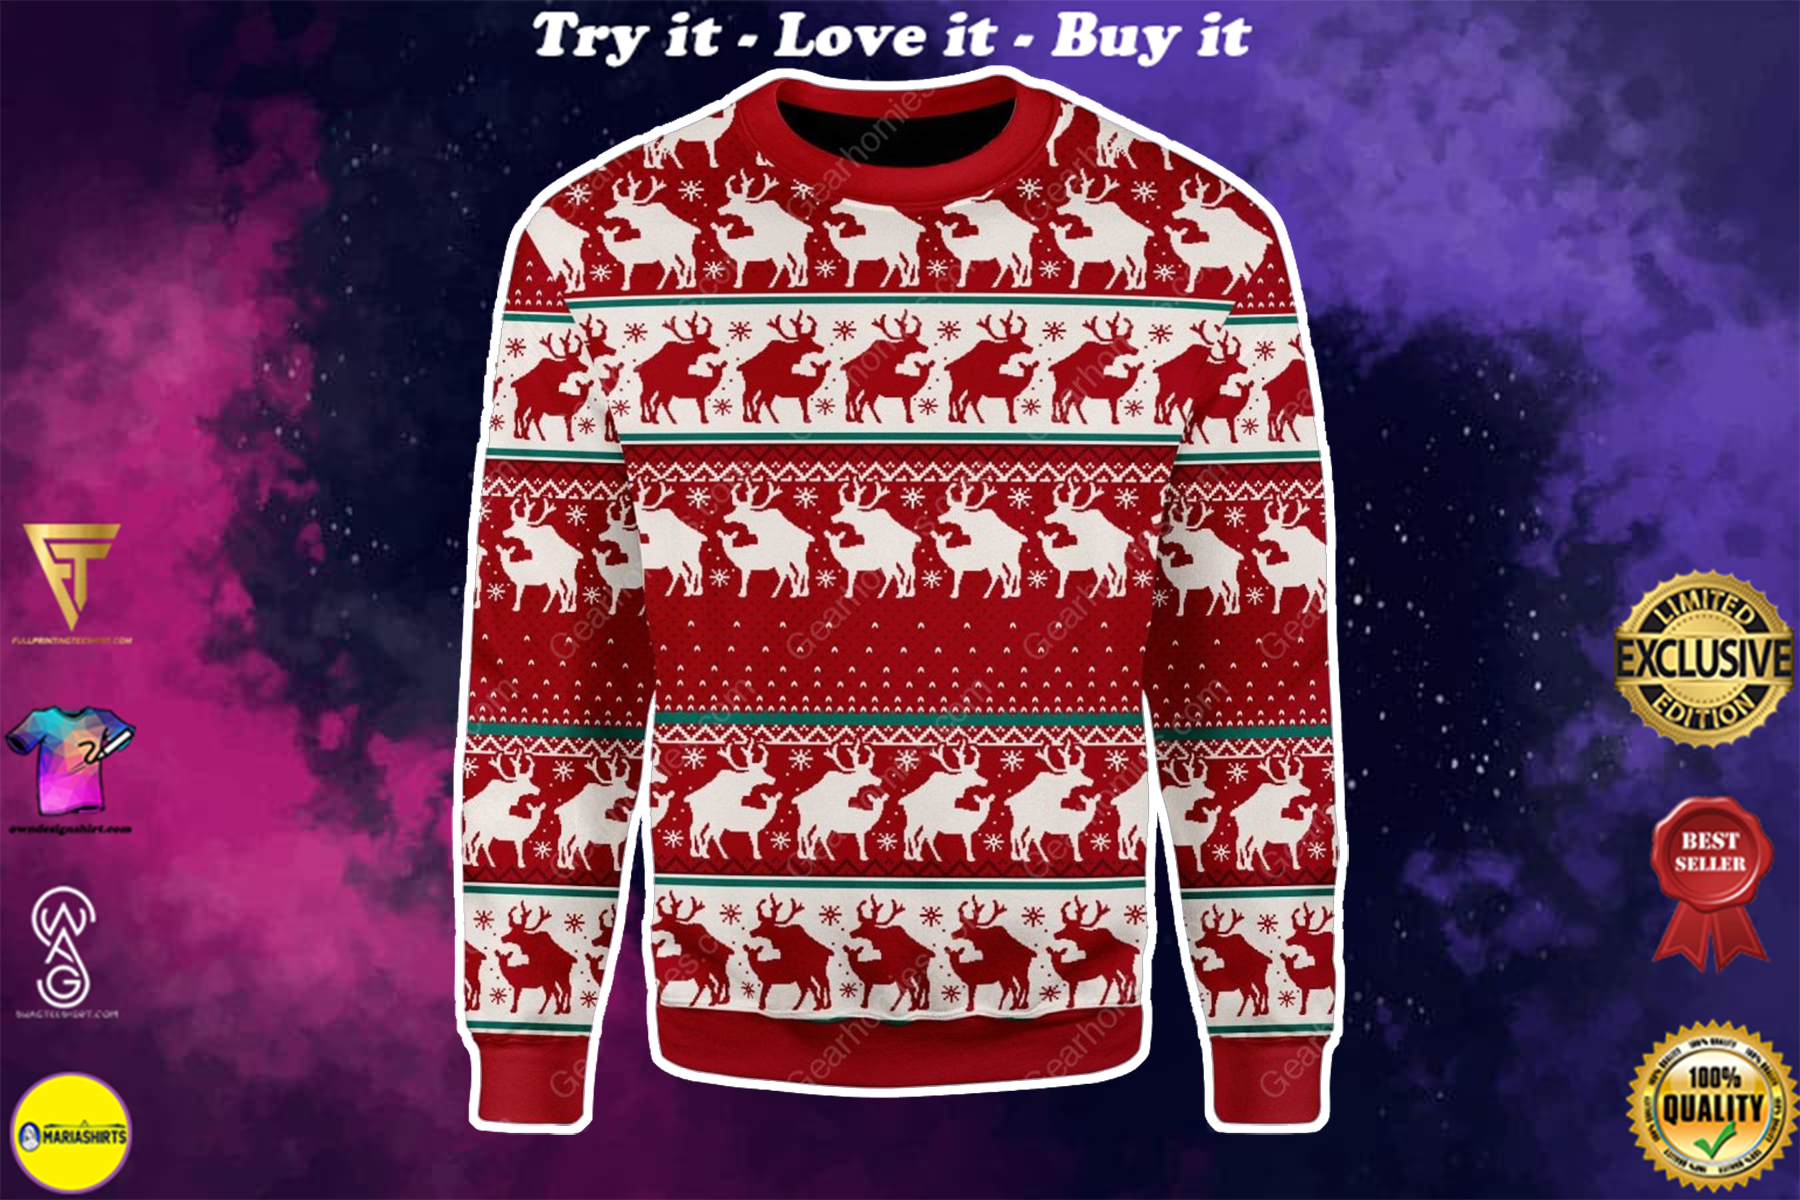 [special edition] reindeer all over printed ugly christmas sweater - maria